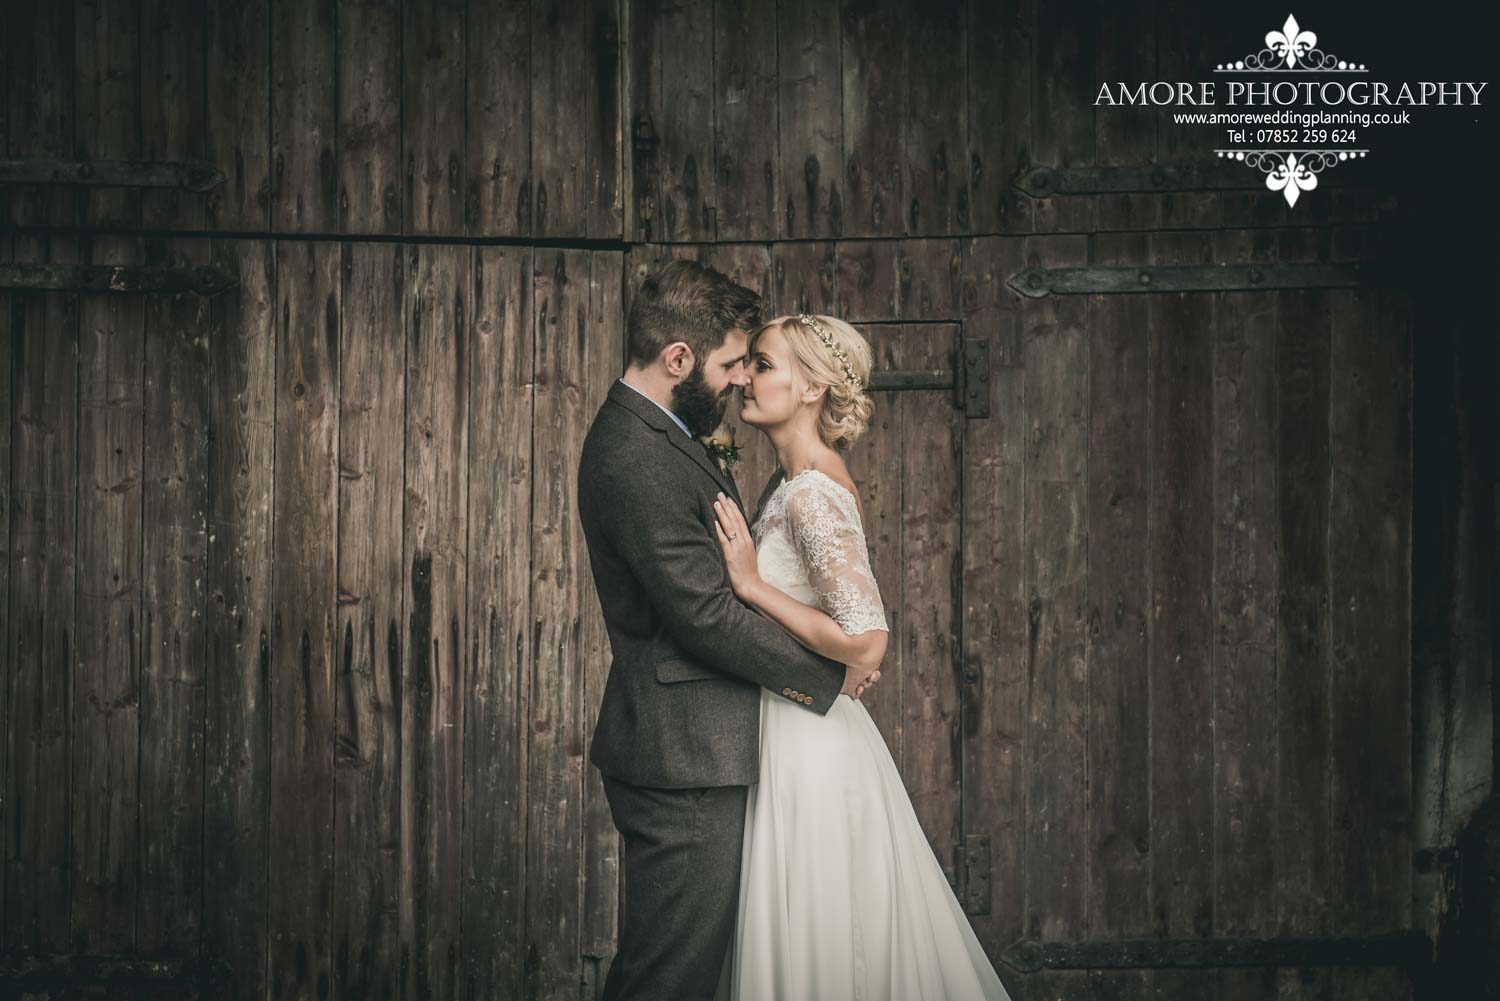 Vintage Wedding Photographer Wakefield North Yorkshire Leeds Wedding Photography Vintage Rustic Barn Weddings (126)